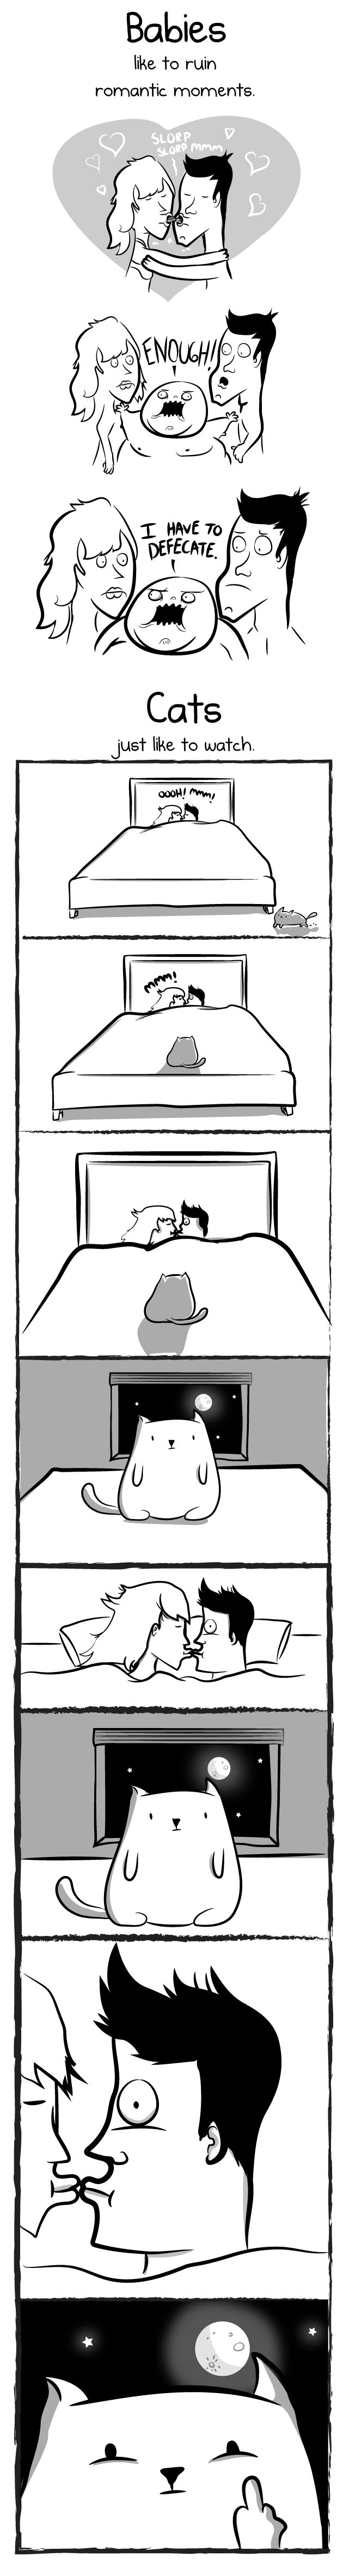 Having a baby VS having a cat - The Oatmeal